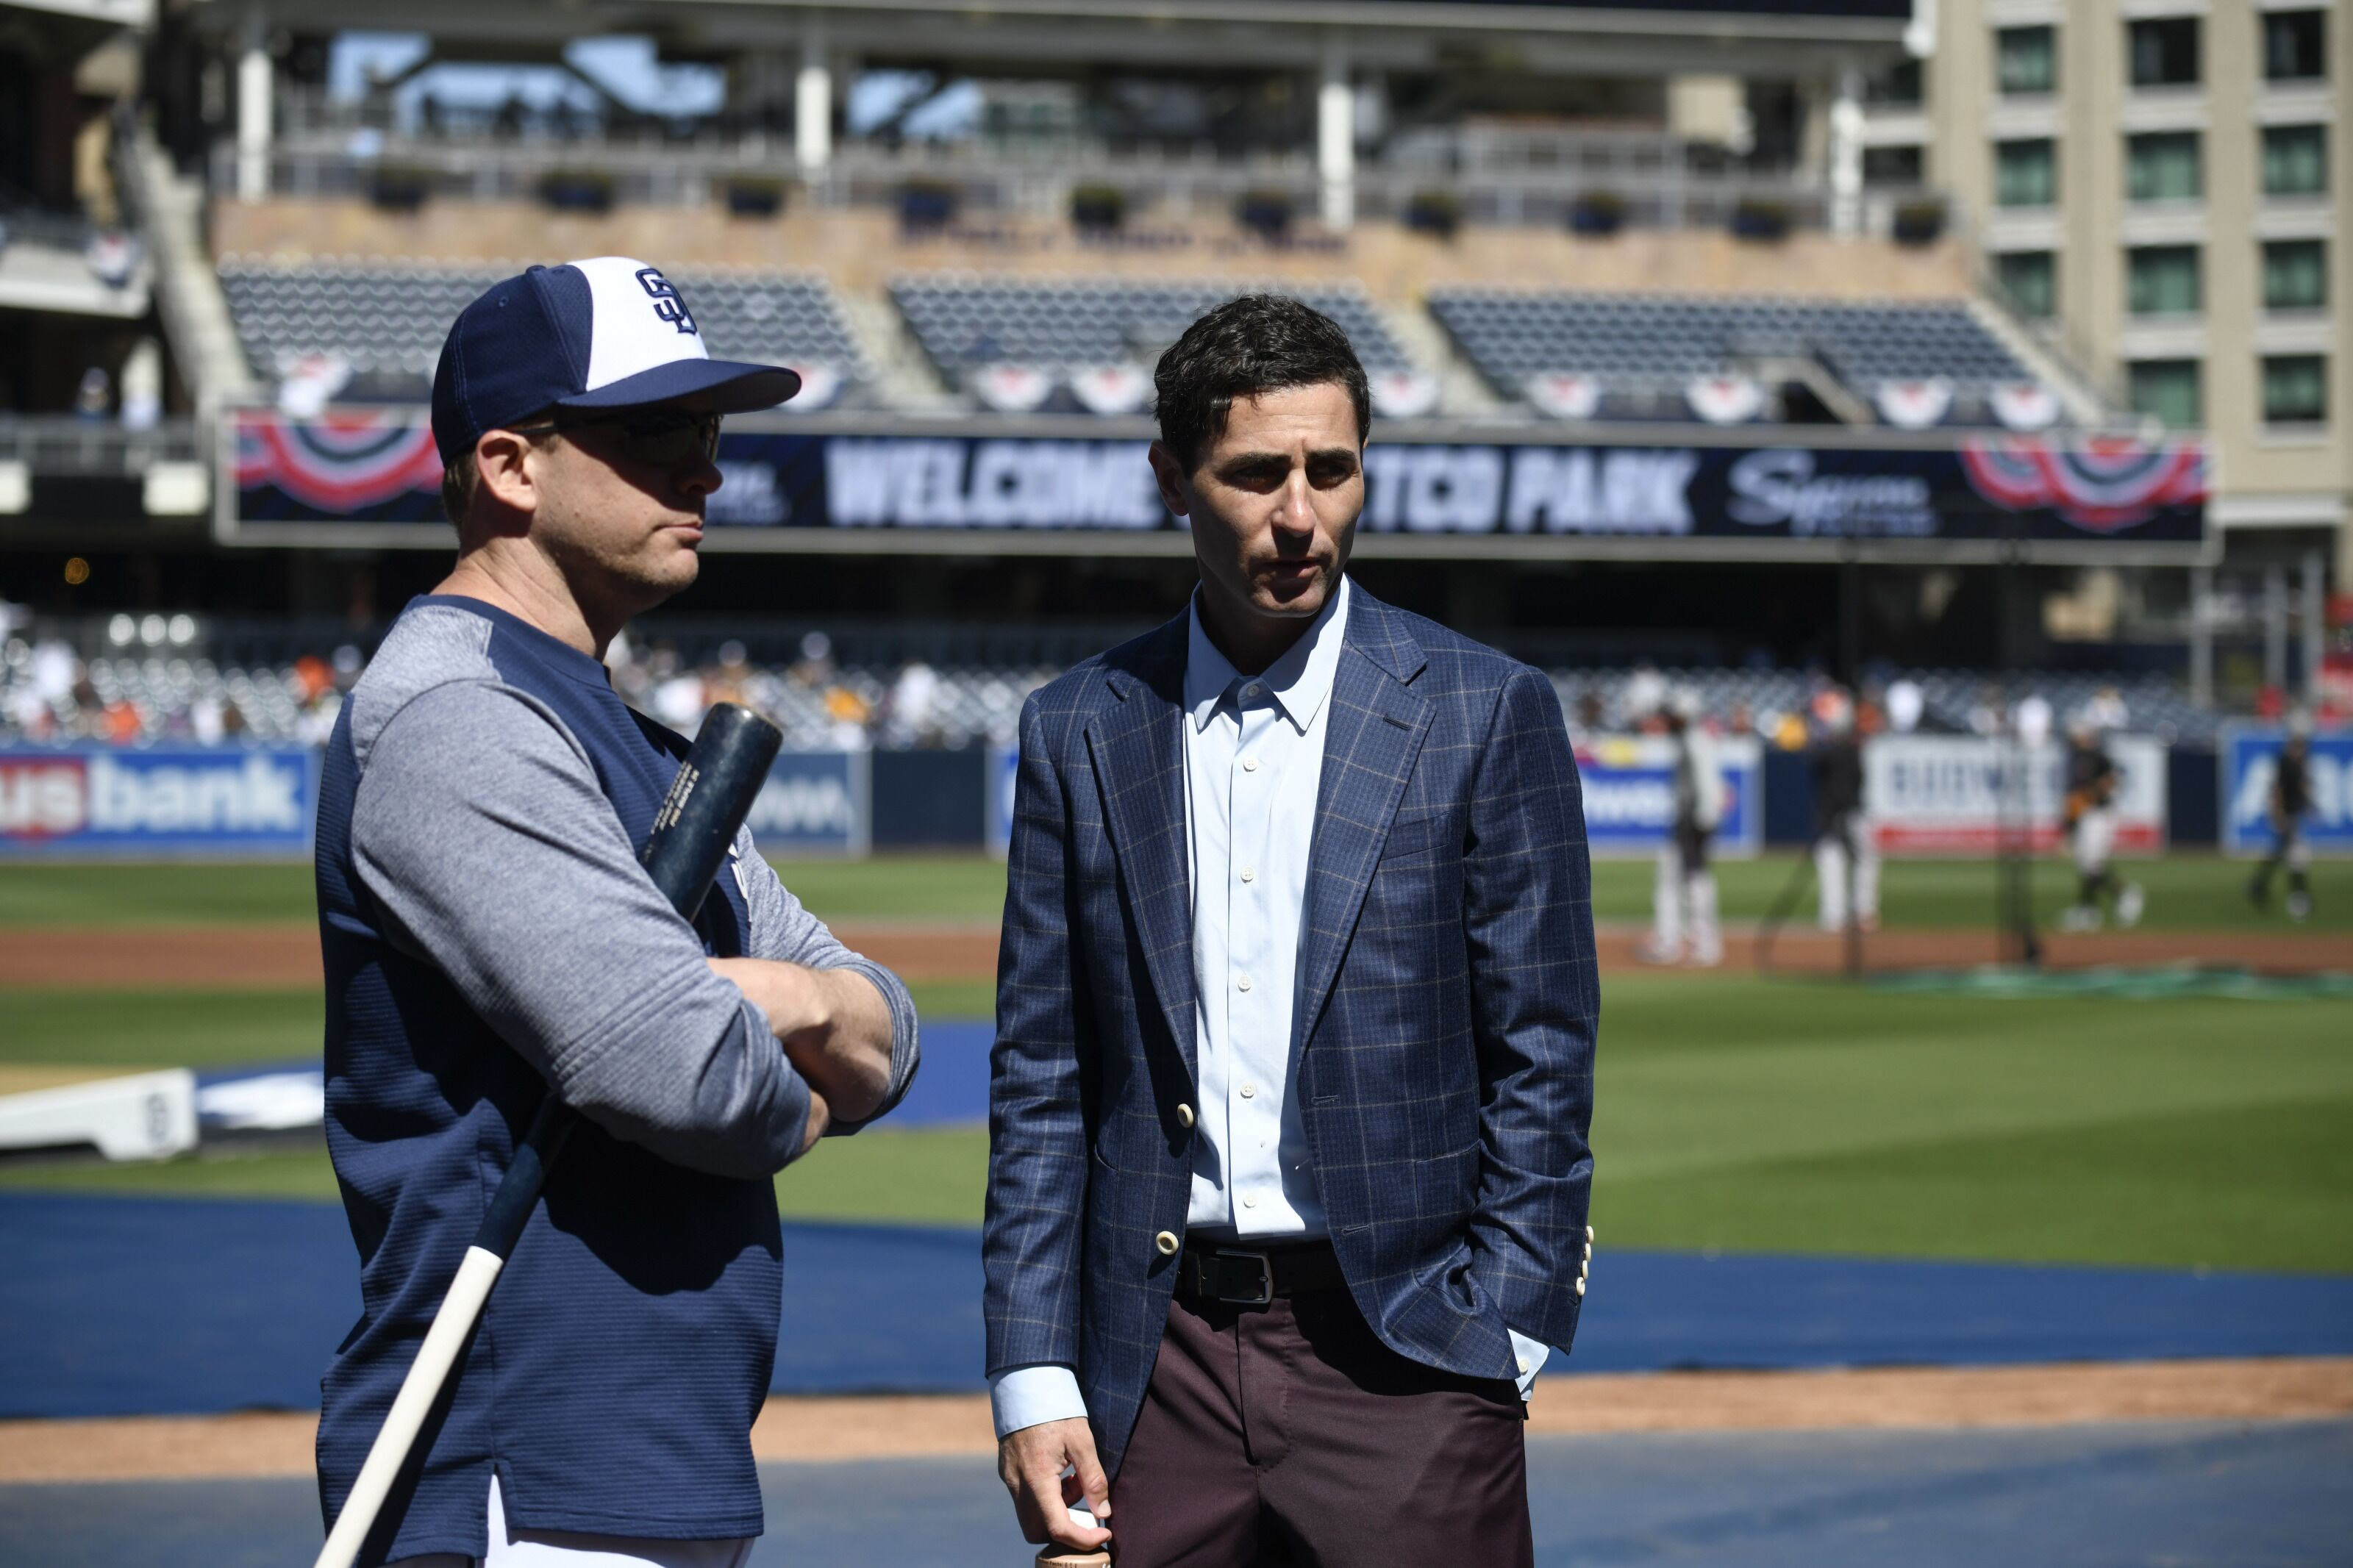 San Diego Padres: Not much hope to land Strasburg or Cole